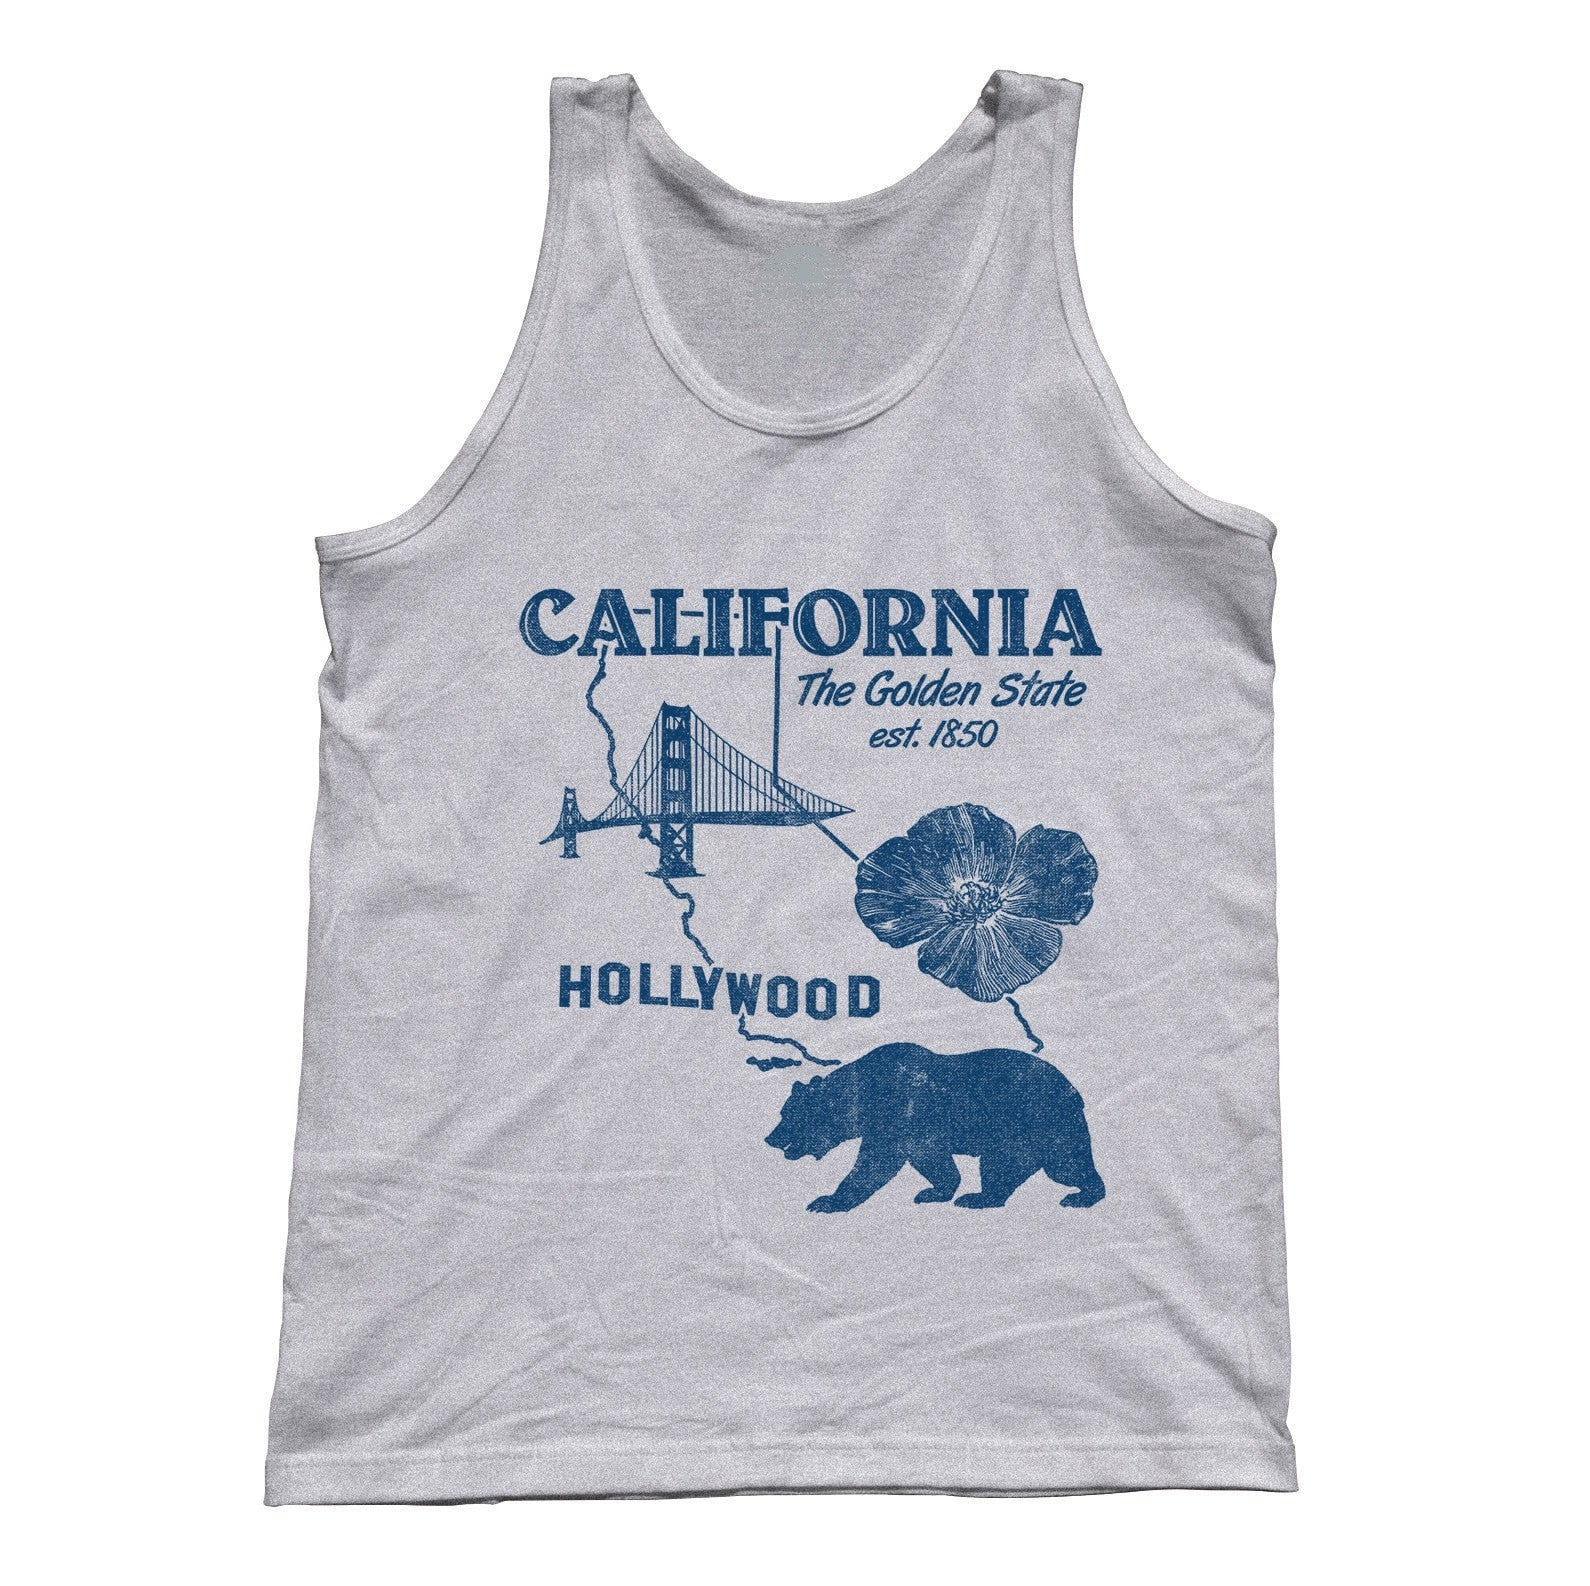 Unisex California Tank Top